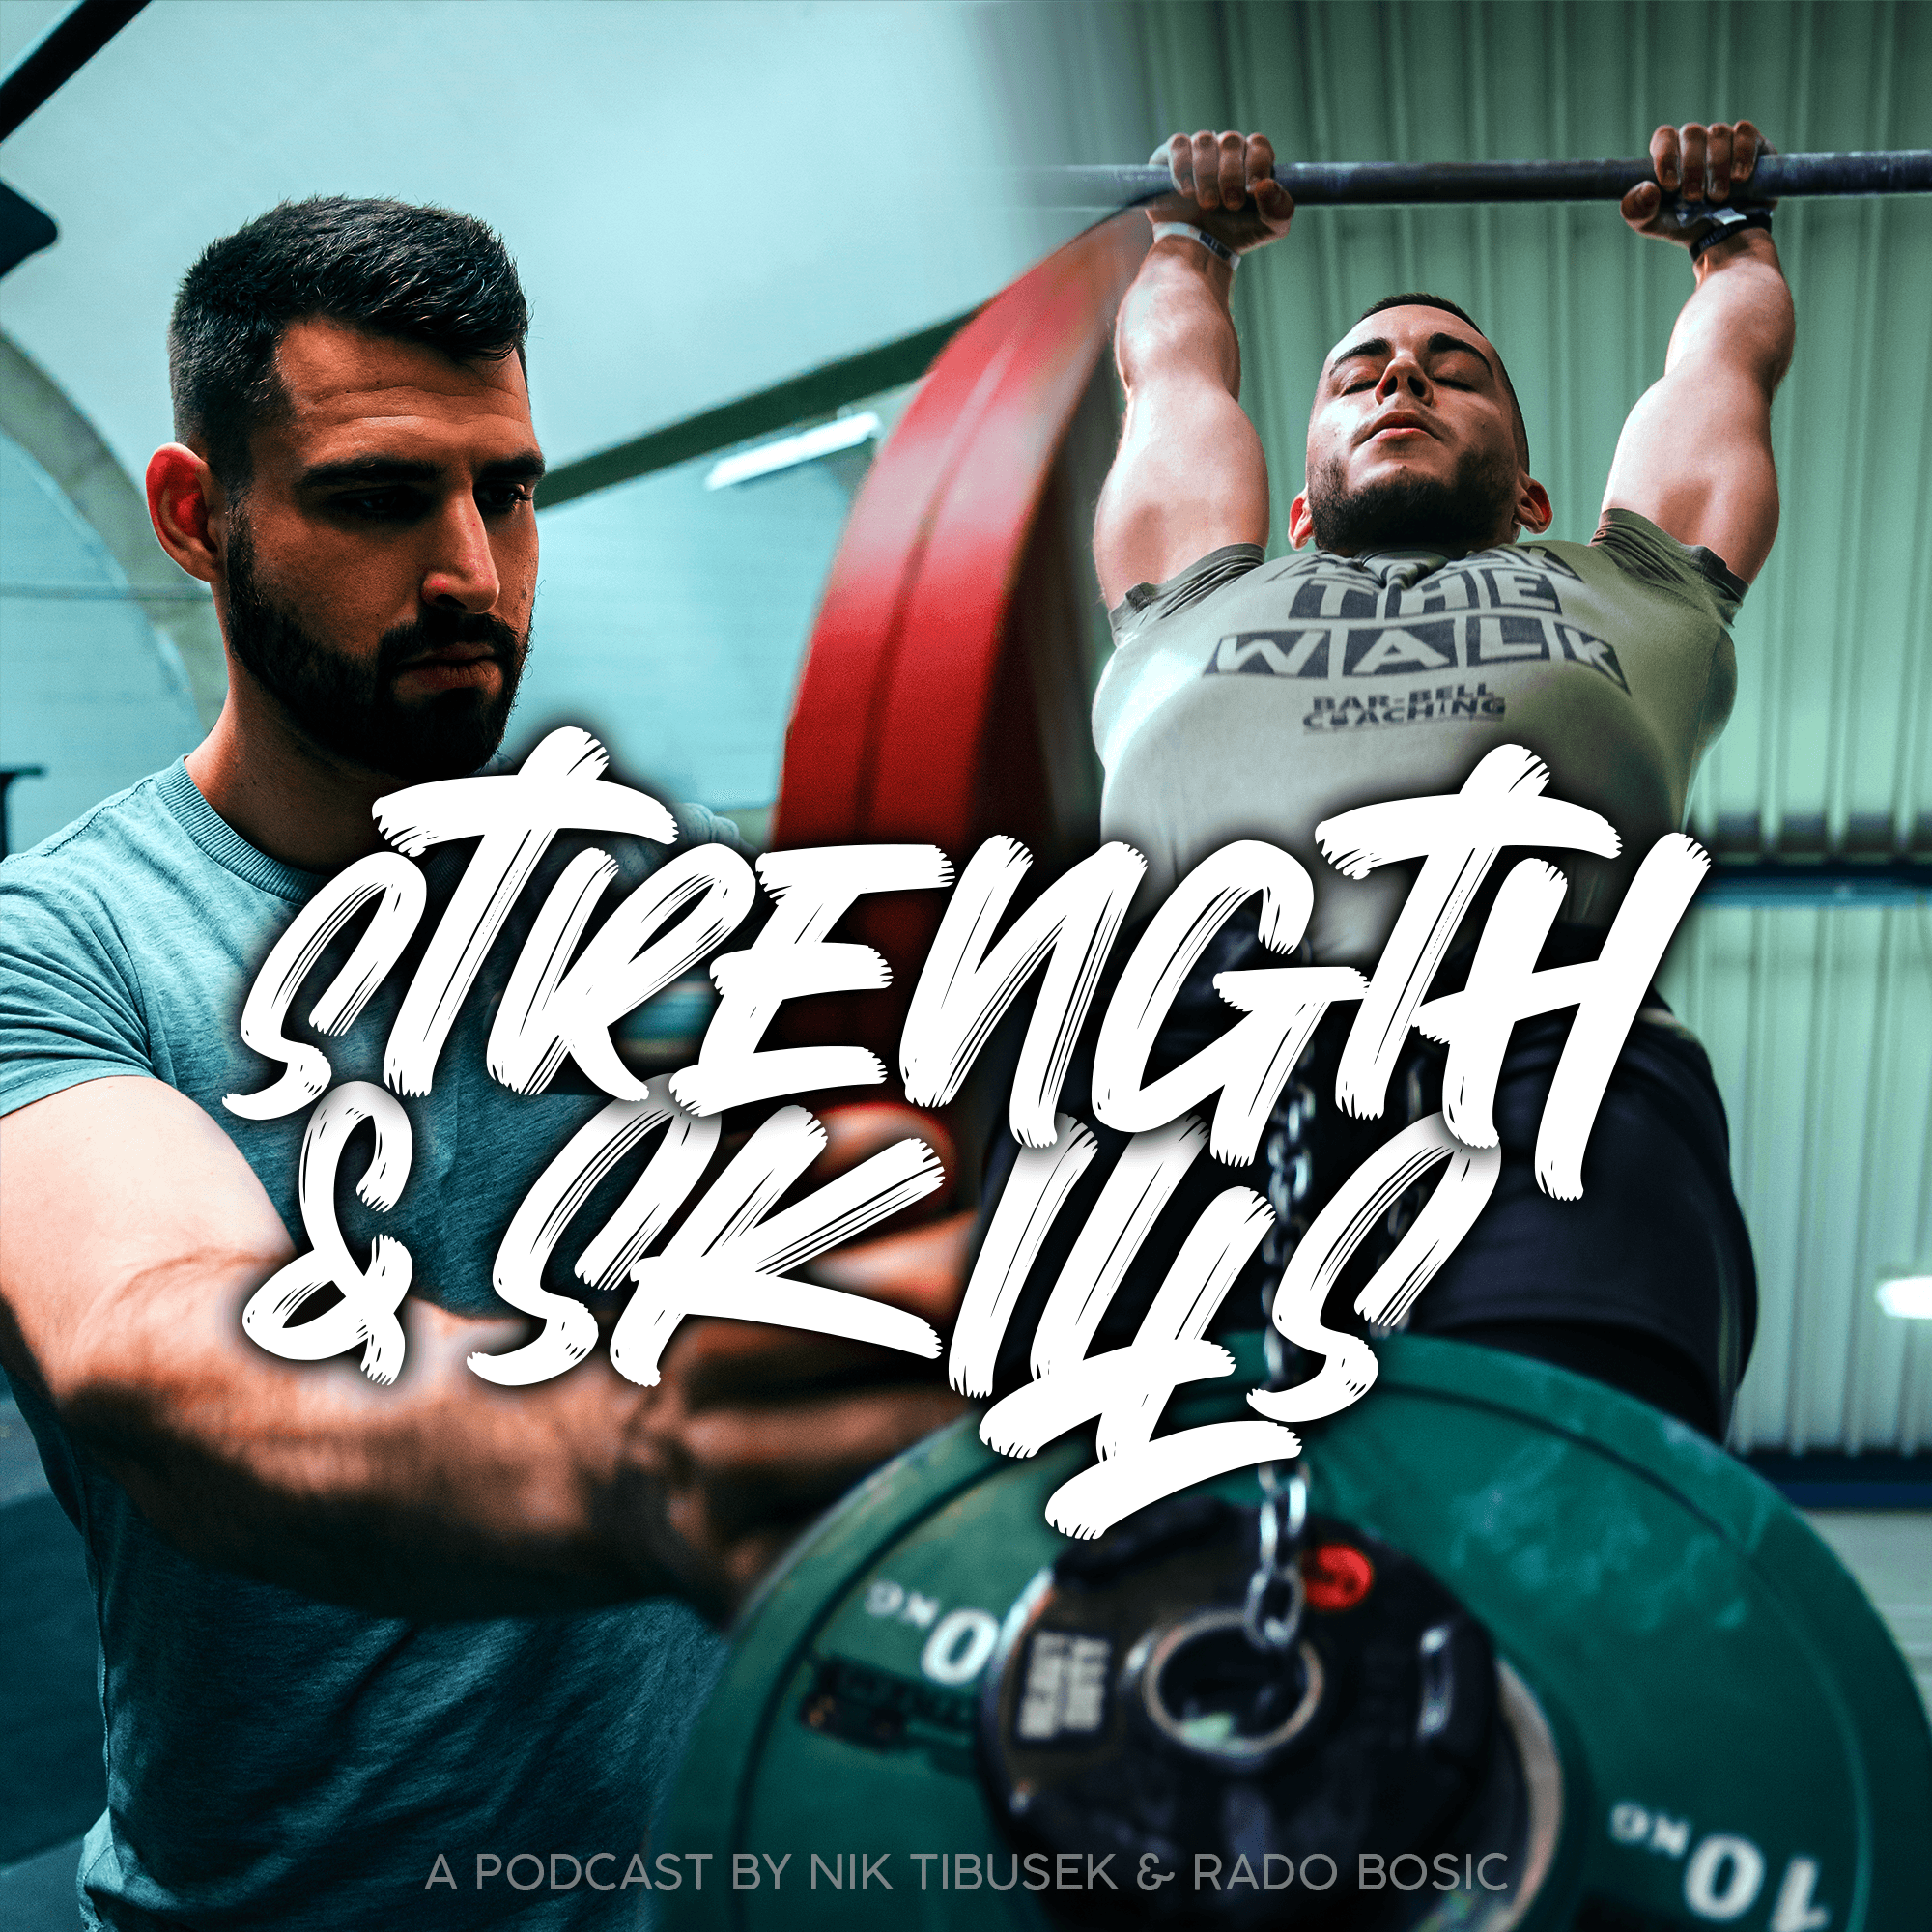 Strength and Skills Podcast International